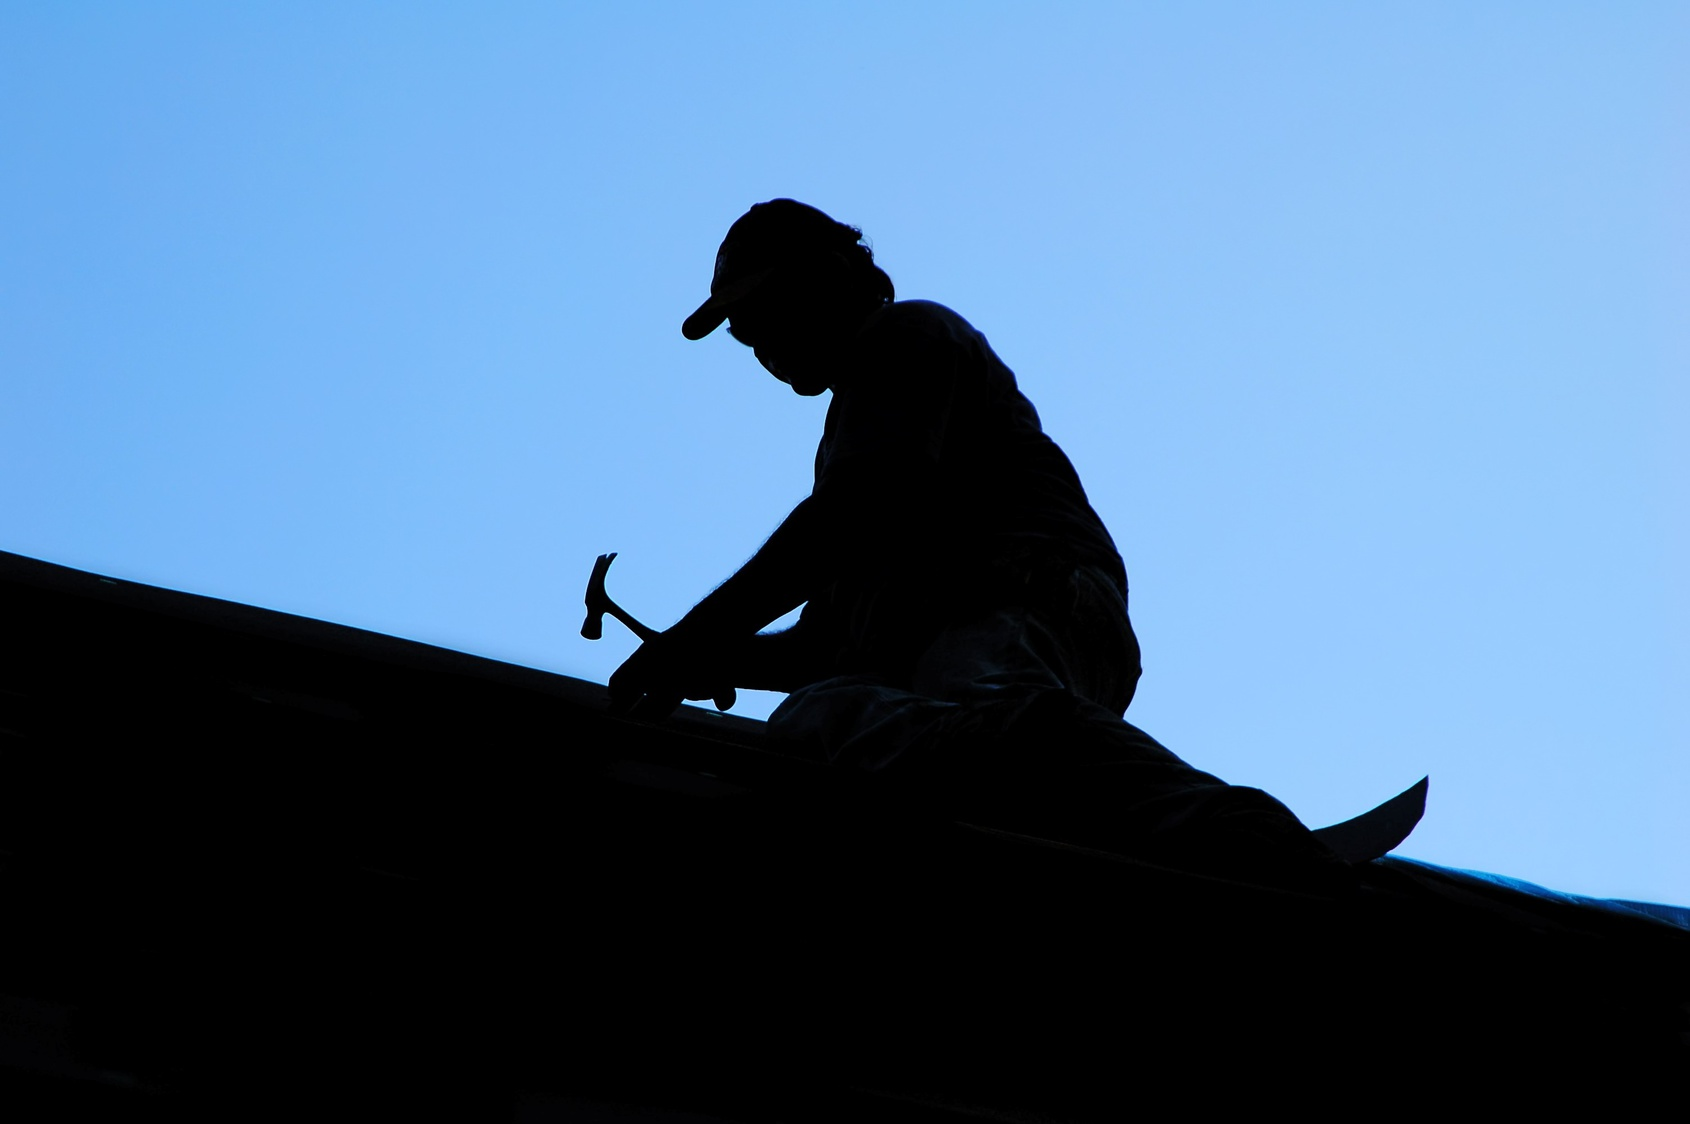 A silhouette of a roofer working a dawn in Alpharetta